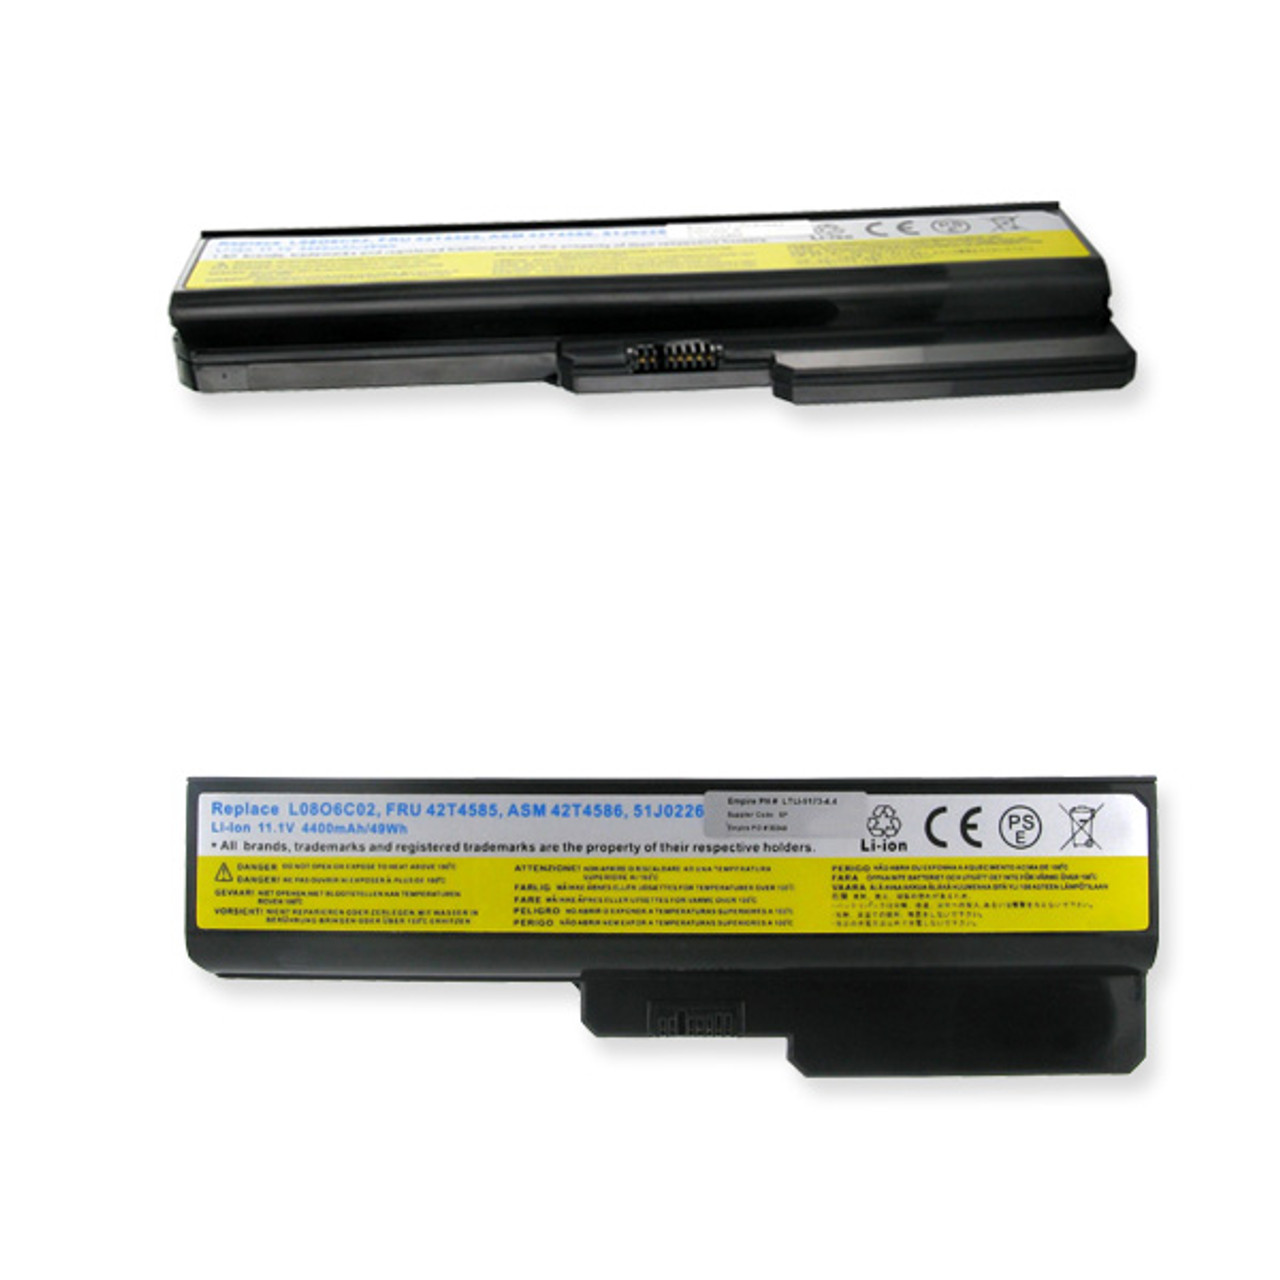 Lenovo 3000 G430 Laptop Battery